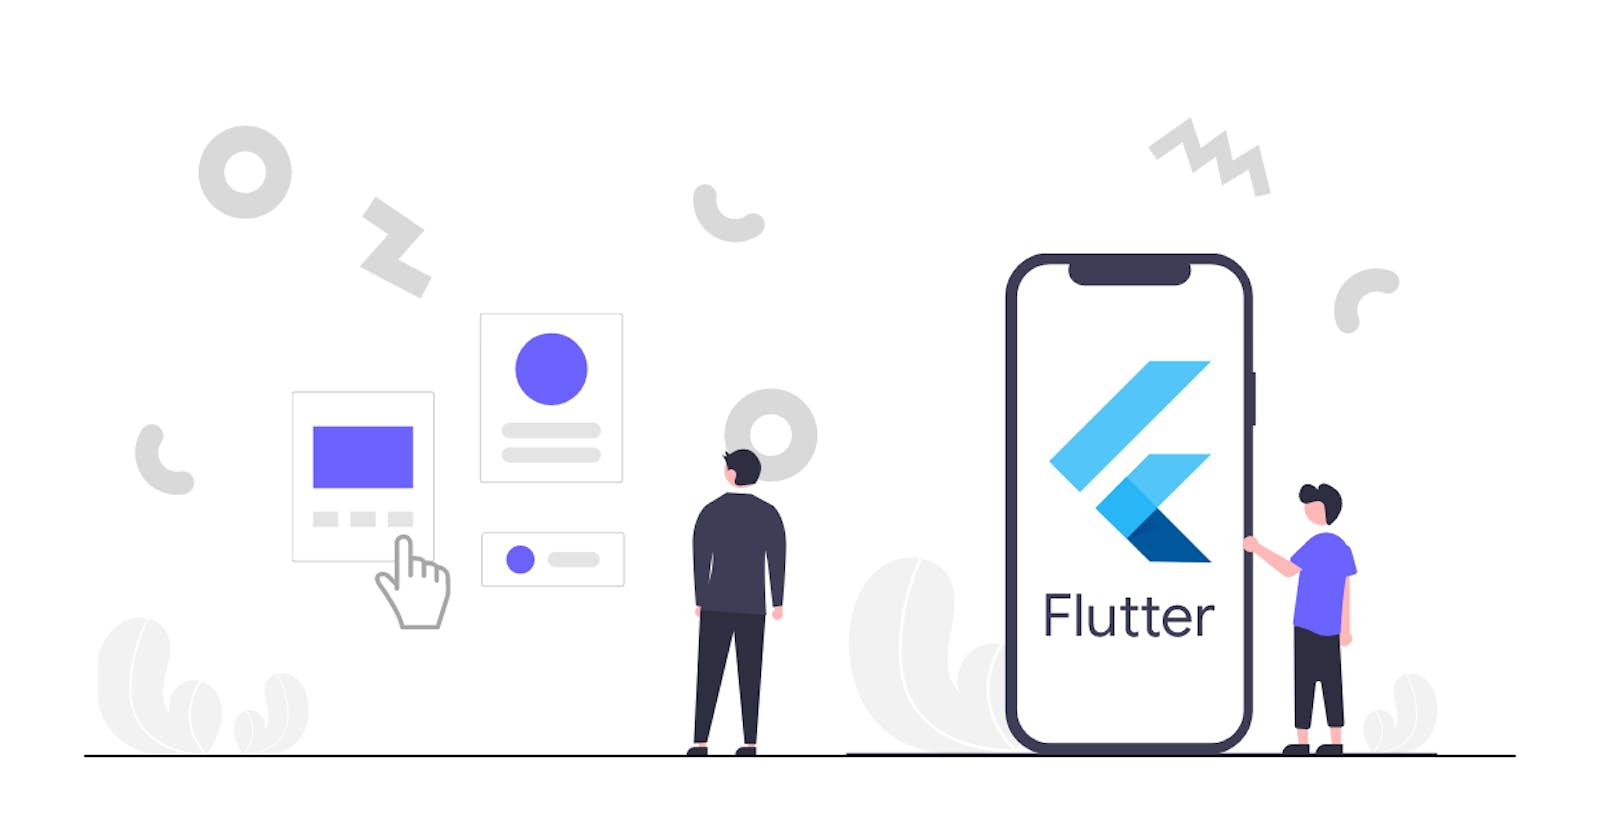 The Ultimate Flutter Layout Guide